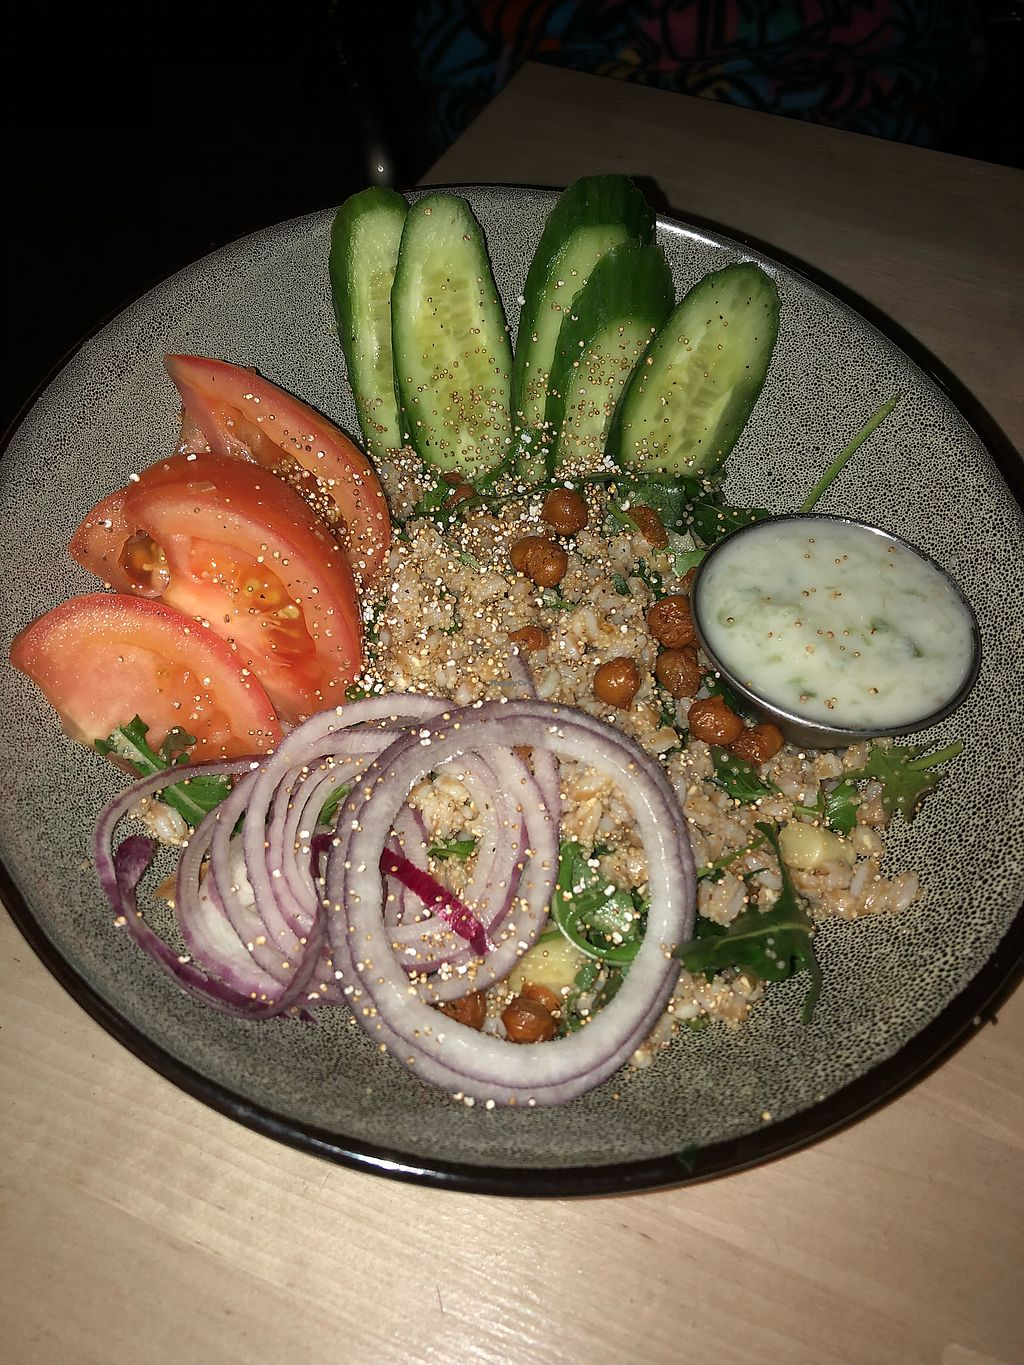 """Photo of Second Nature  by <a href=""""/members/profile/mooch255"""">mooch255</a> <br/>Ancient grains bowl  <br/> January 7, 2018  - <a href='/contact/abuse/image/108840/343792'>Report</a>"""